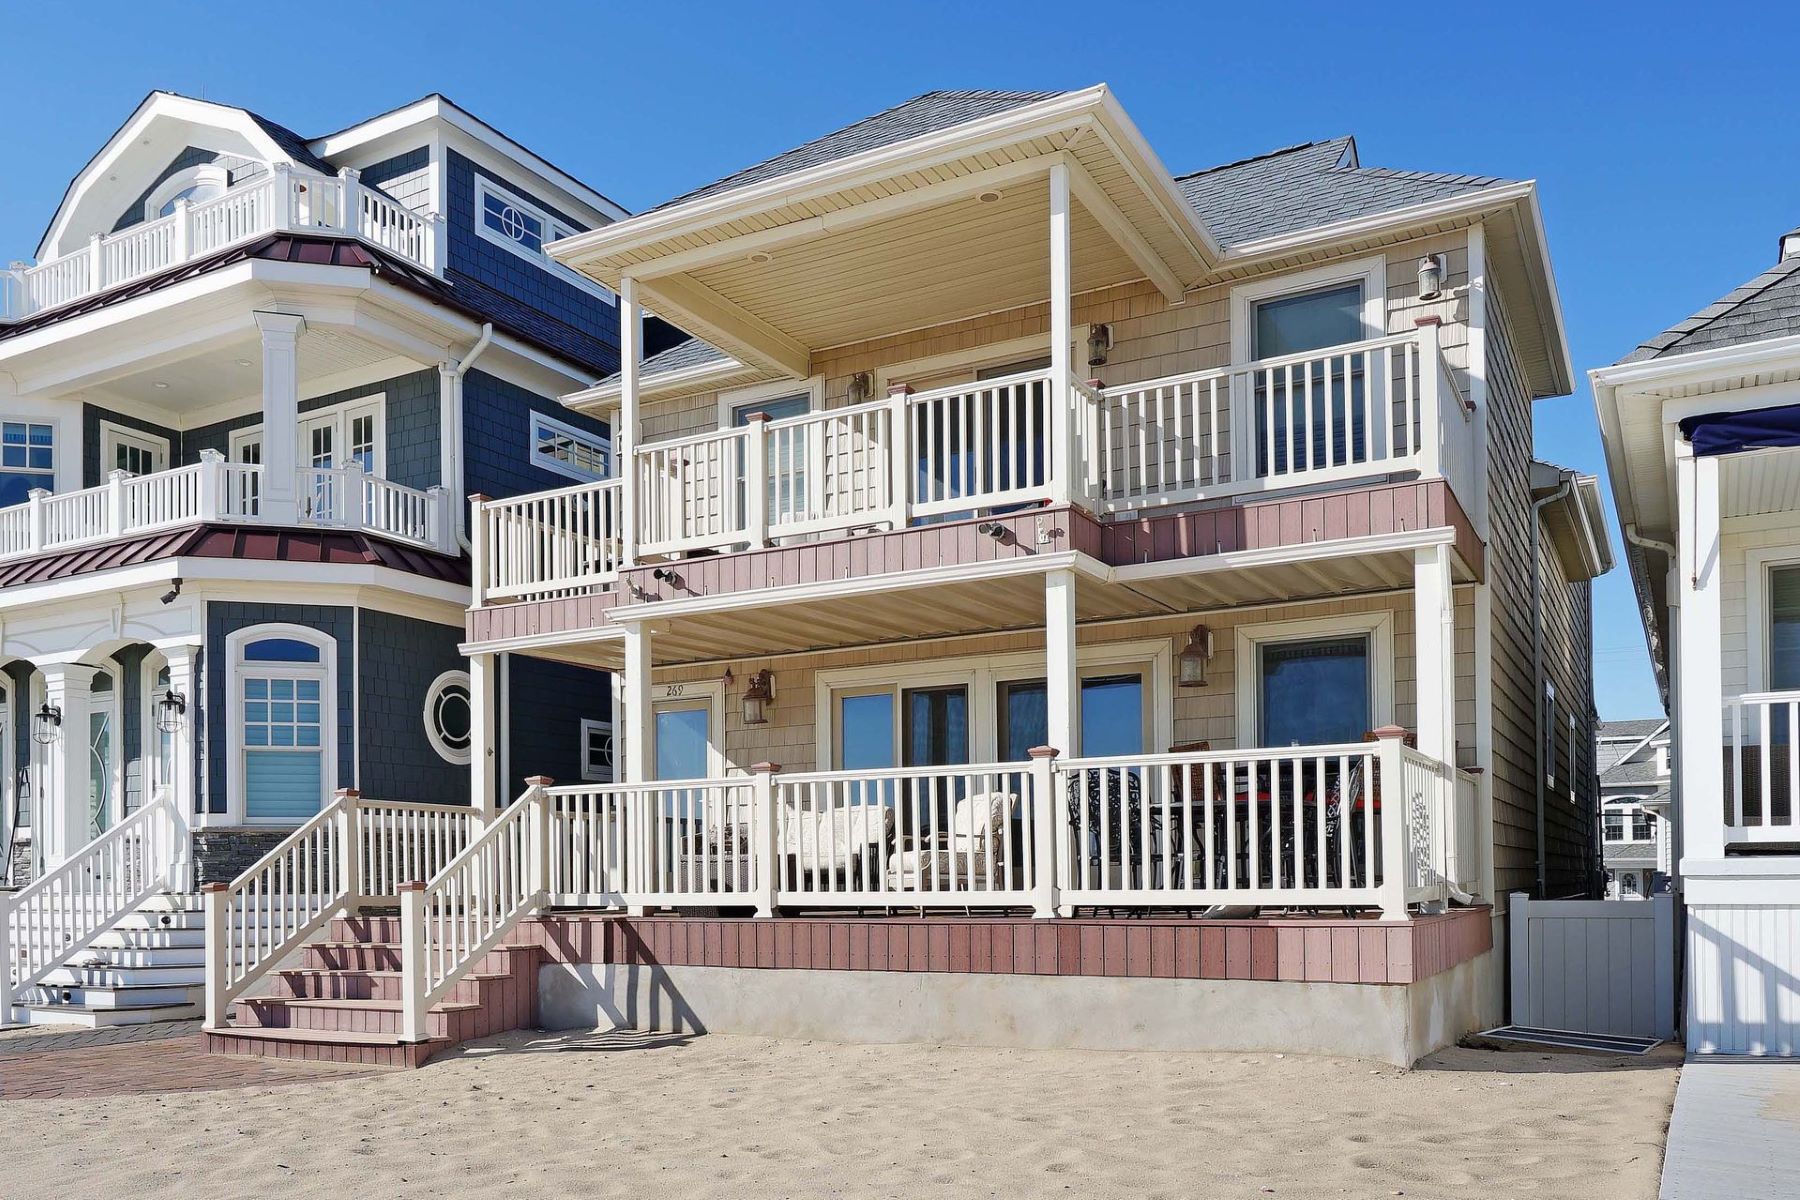 Moradia Multi-familiar para Venda às Charming Beachfront Compound 269 BF & 270 1st, Manasquan, Nova Jersey, 08736 Estados Unidos